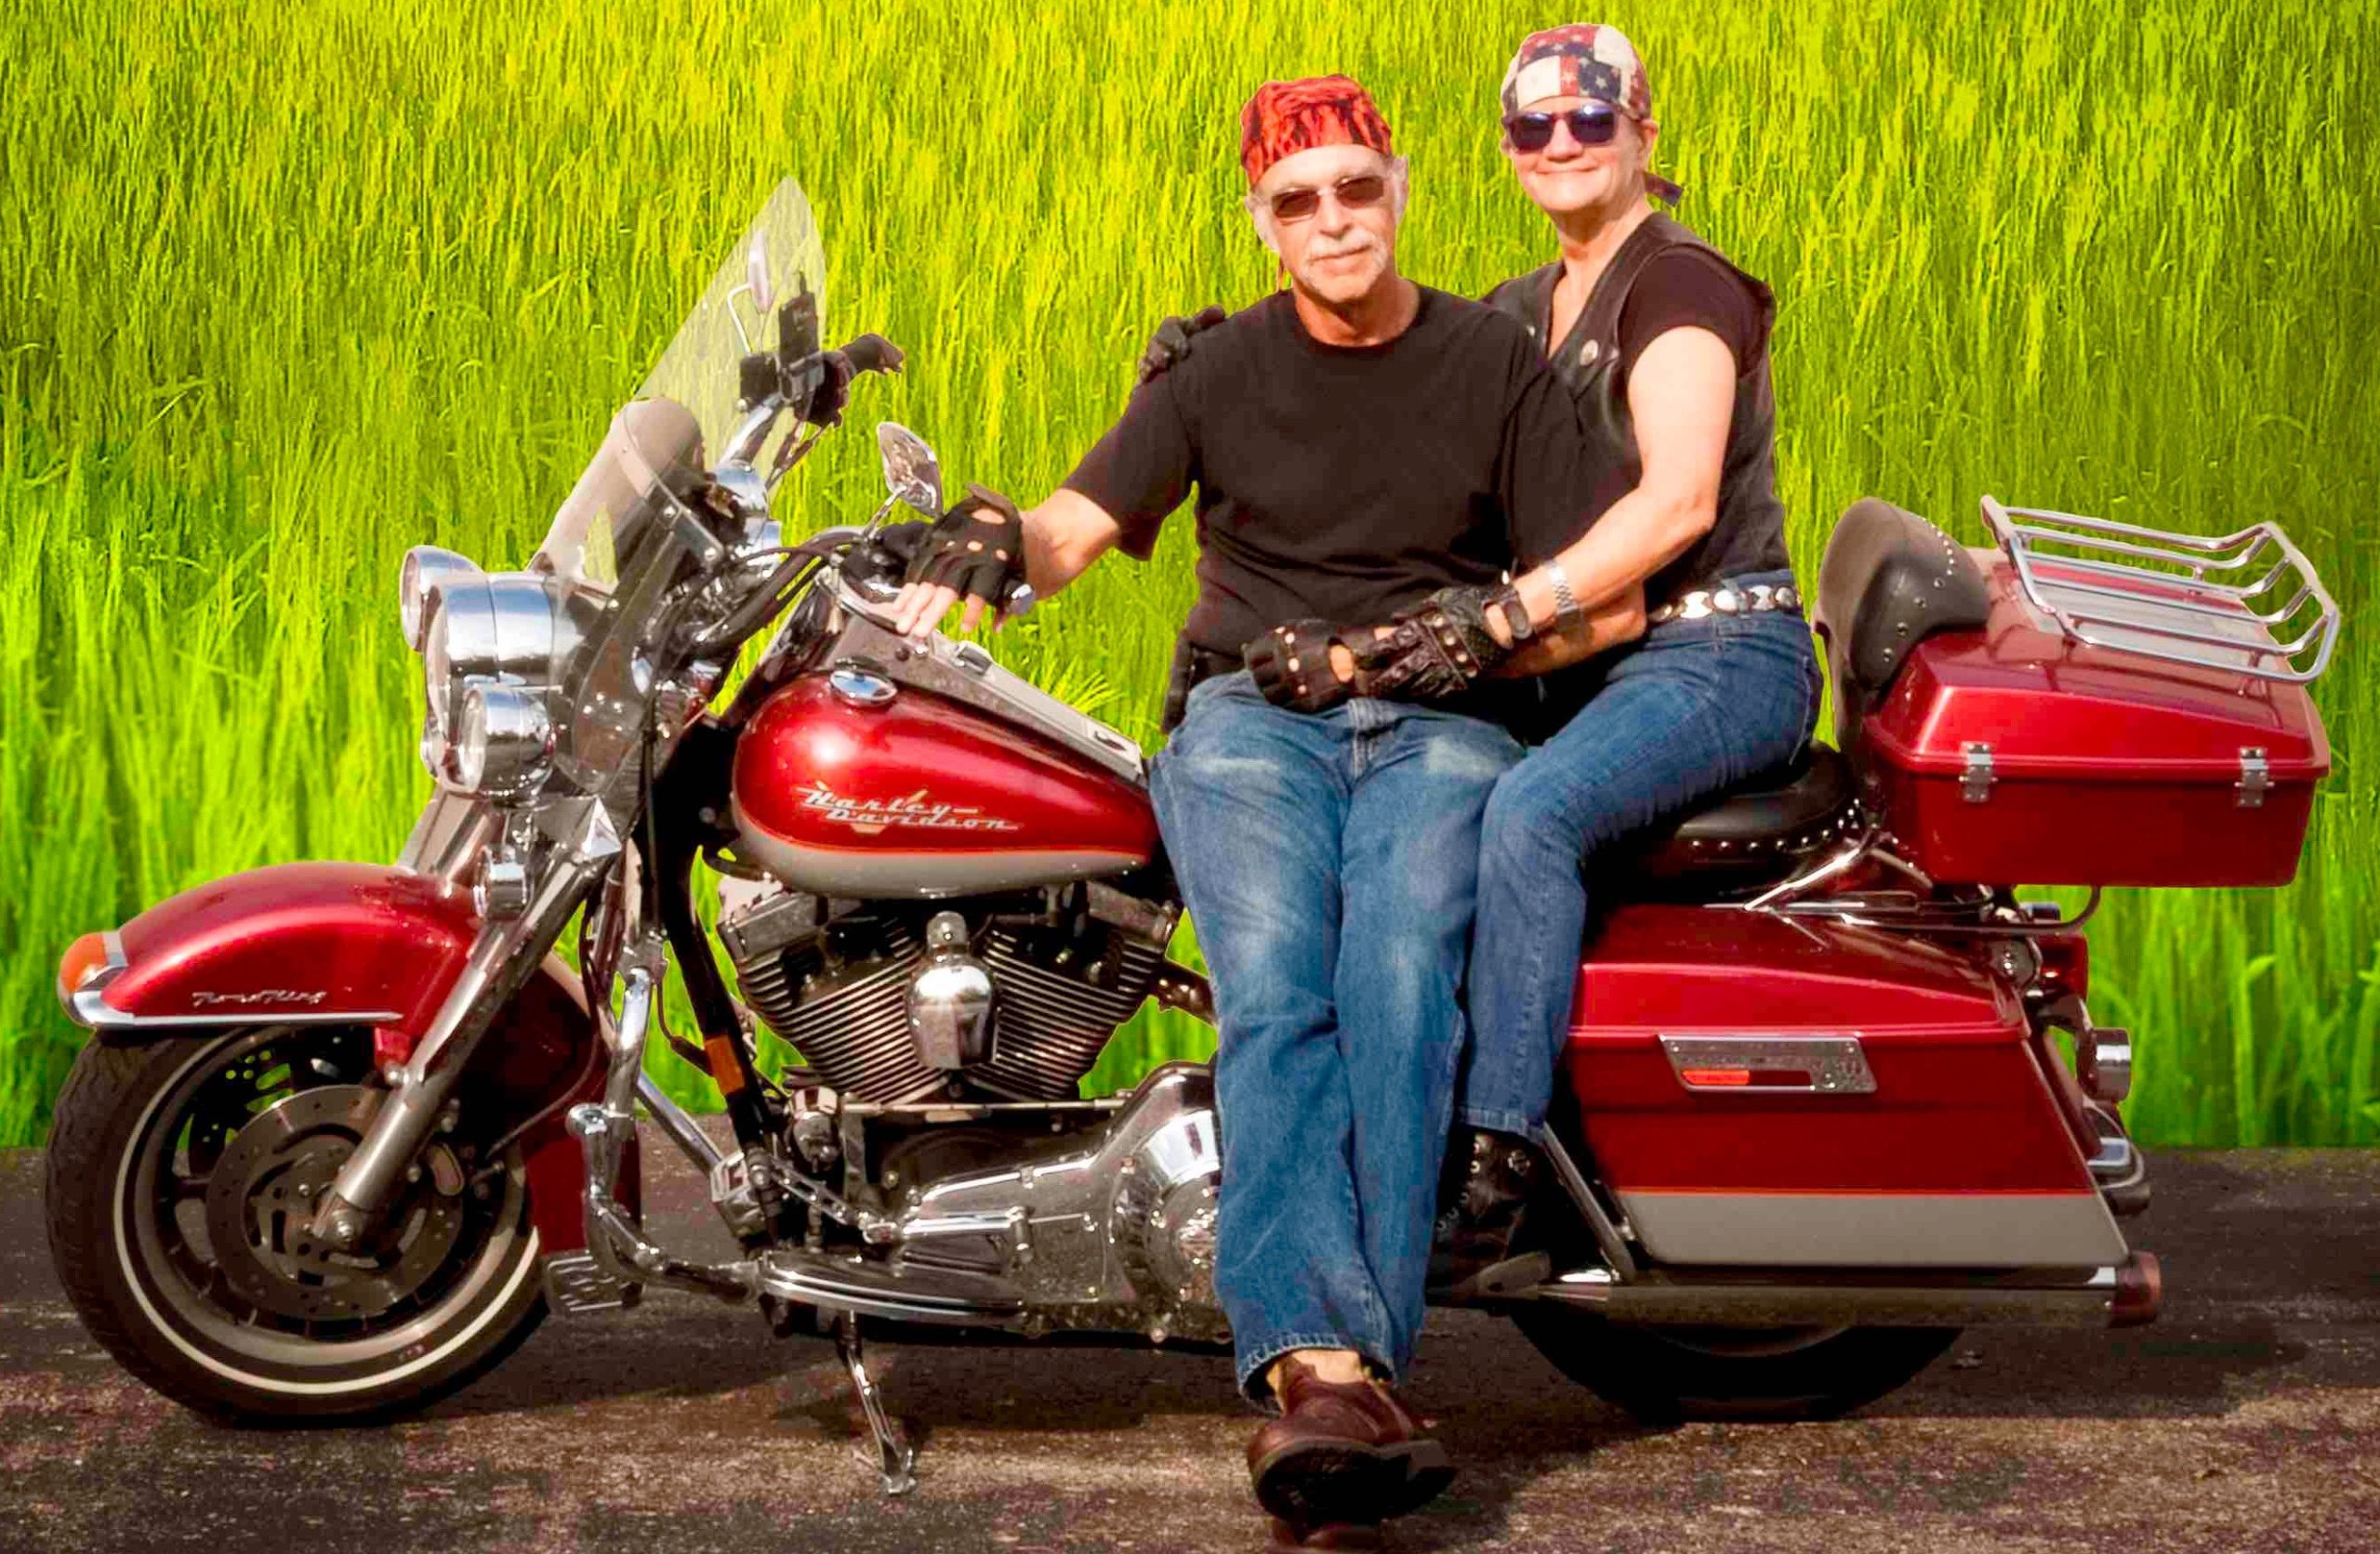 Becky & Tony Portrait with Motorcycle